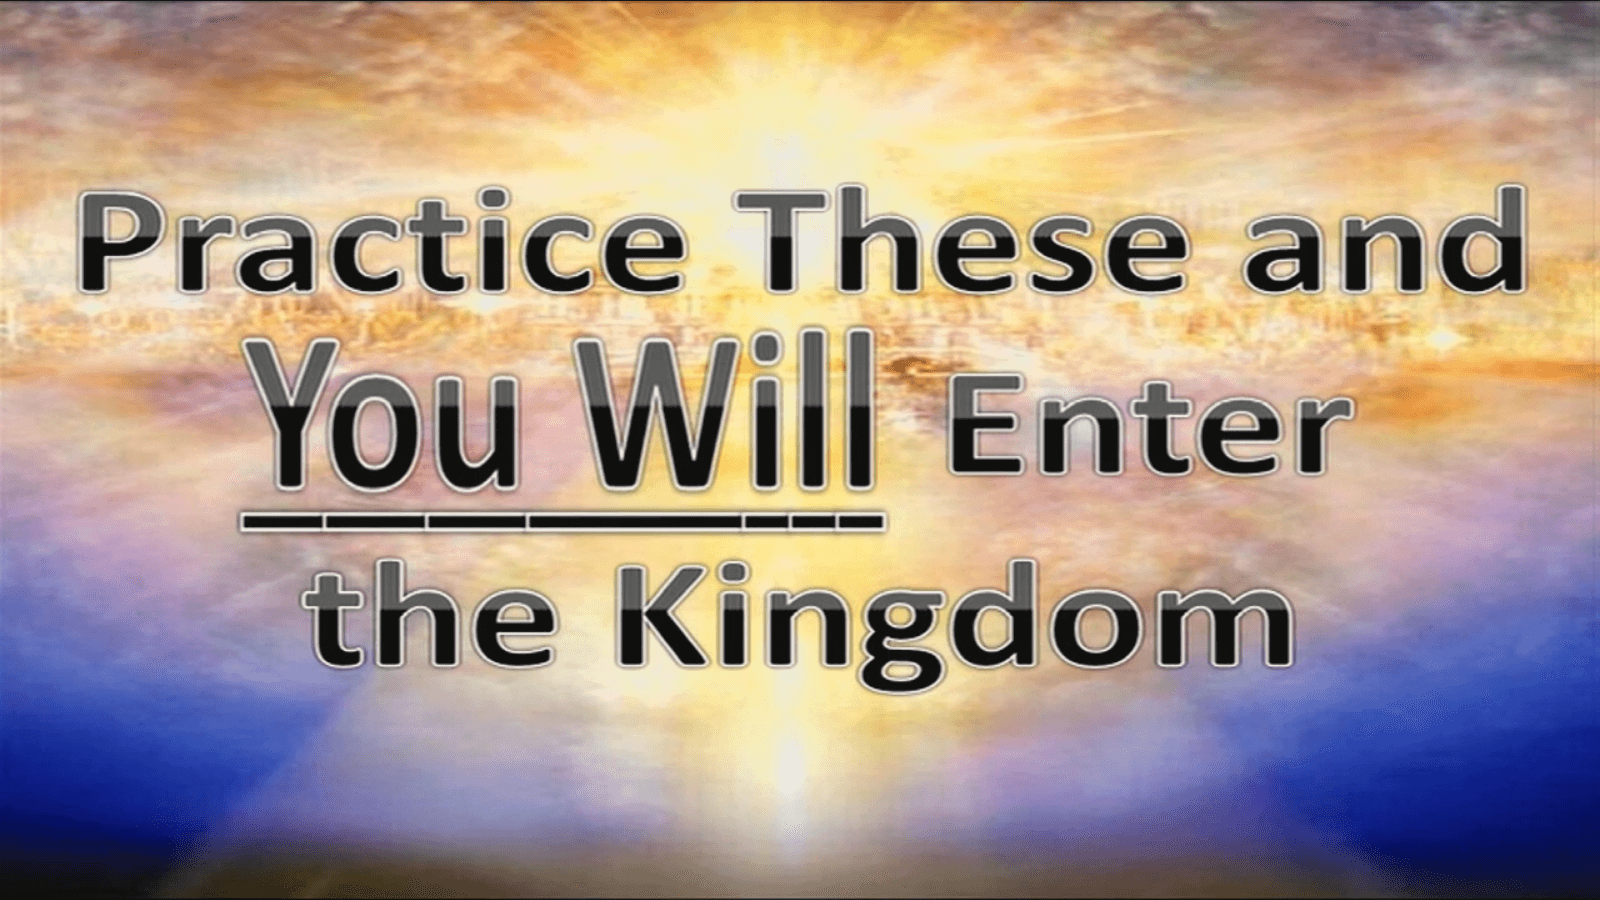 Practice These and You WILL Enter the Kingdom